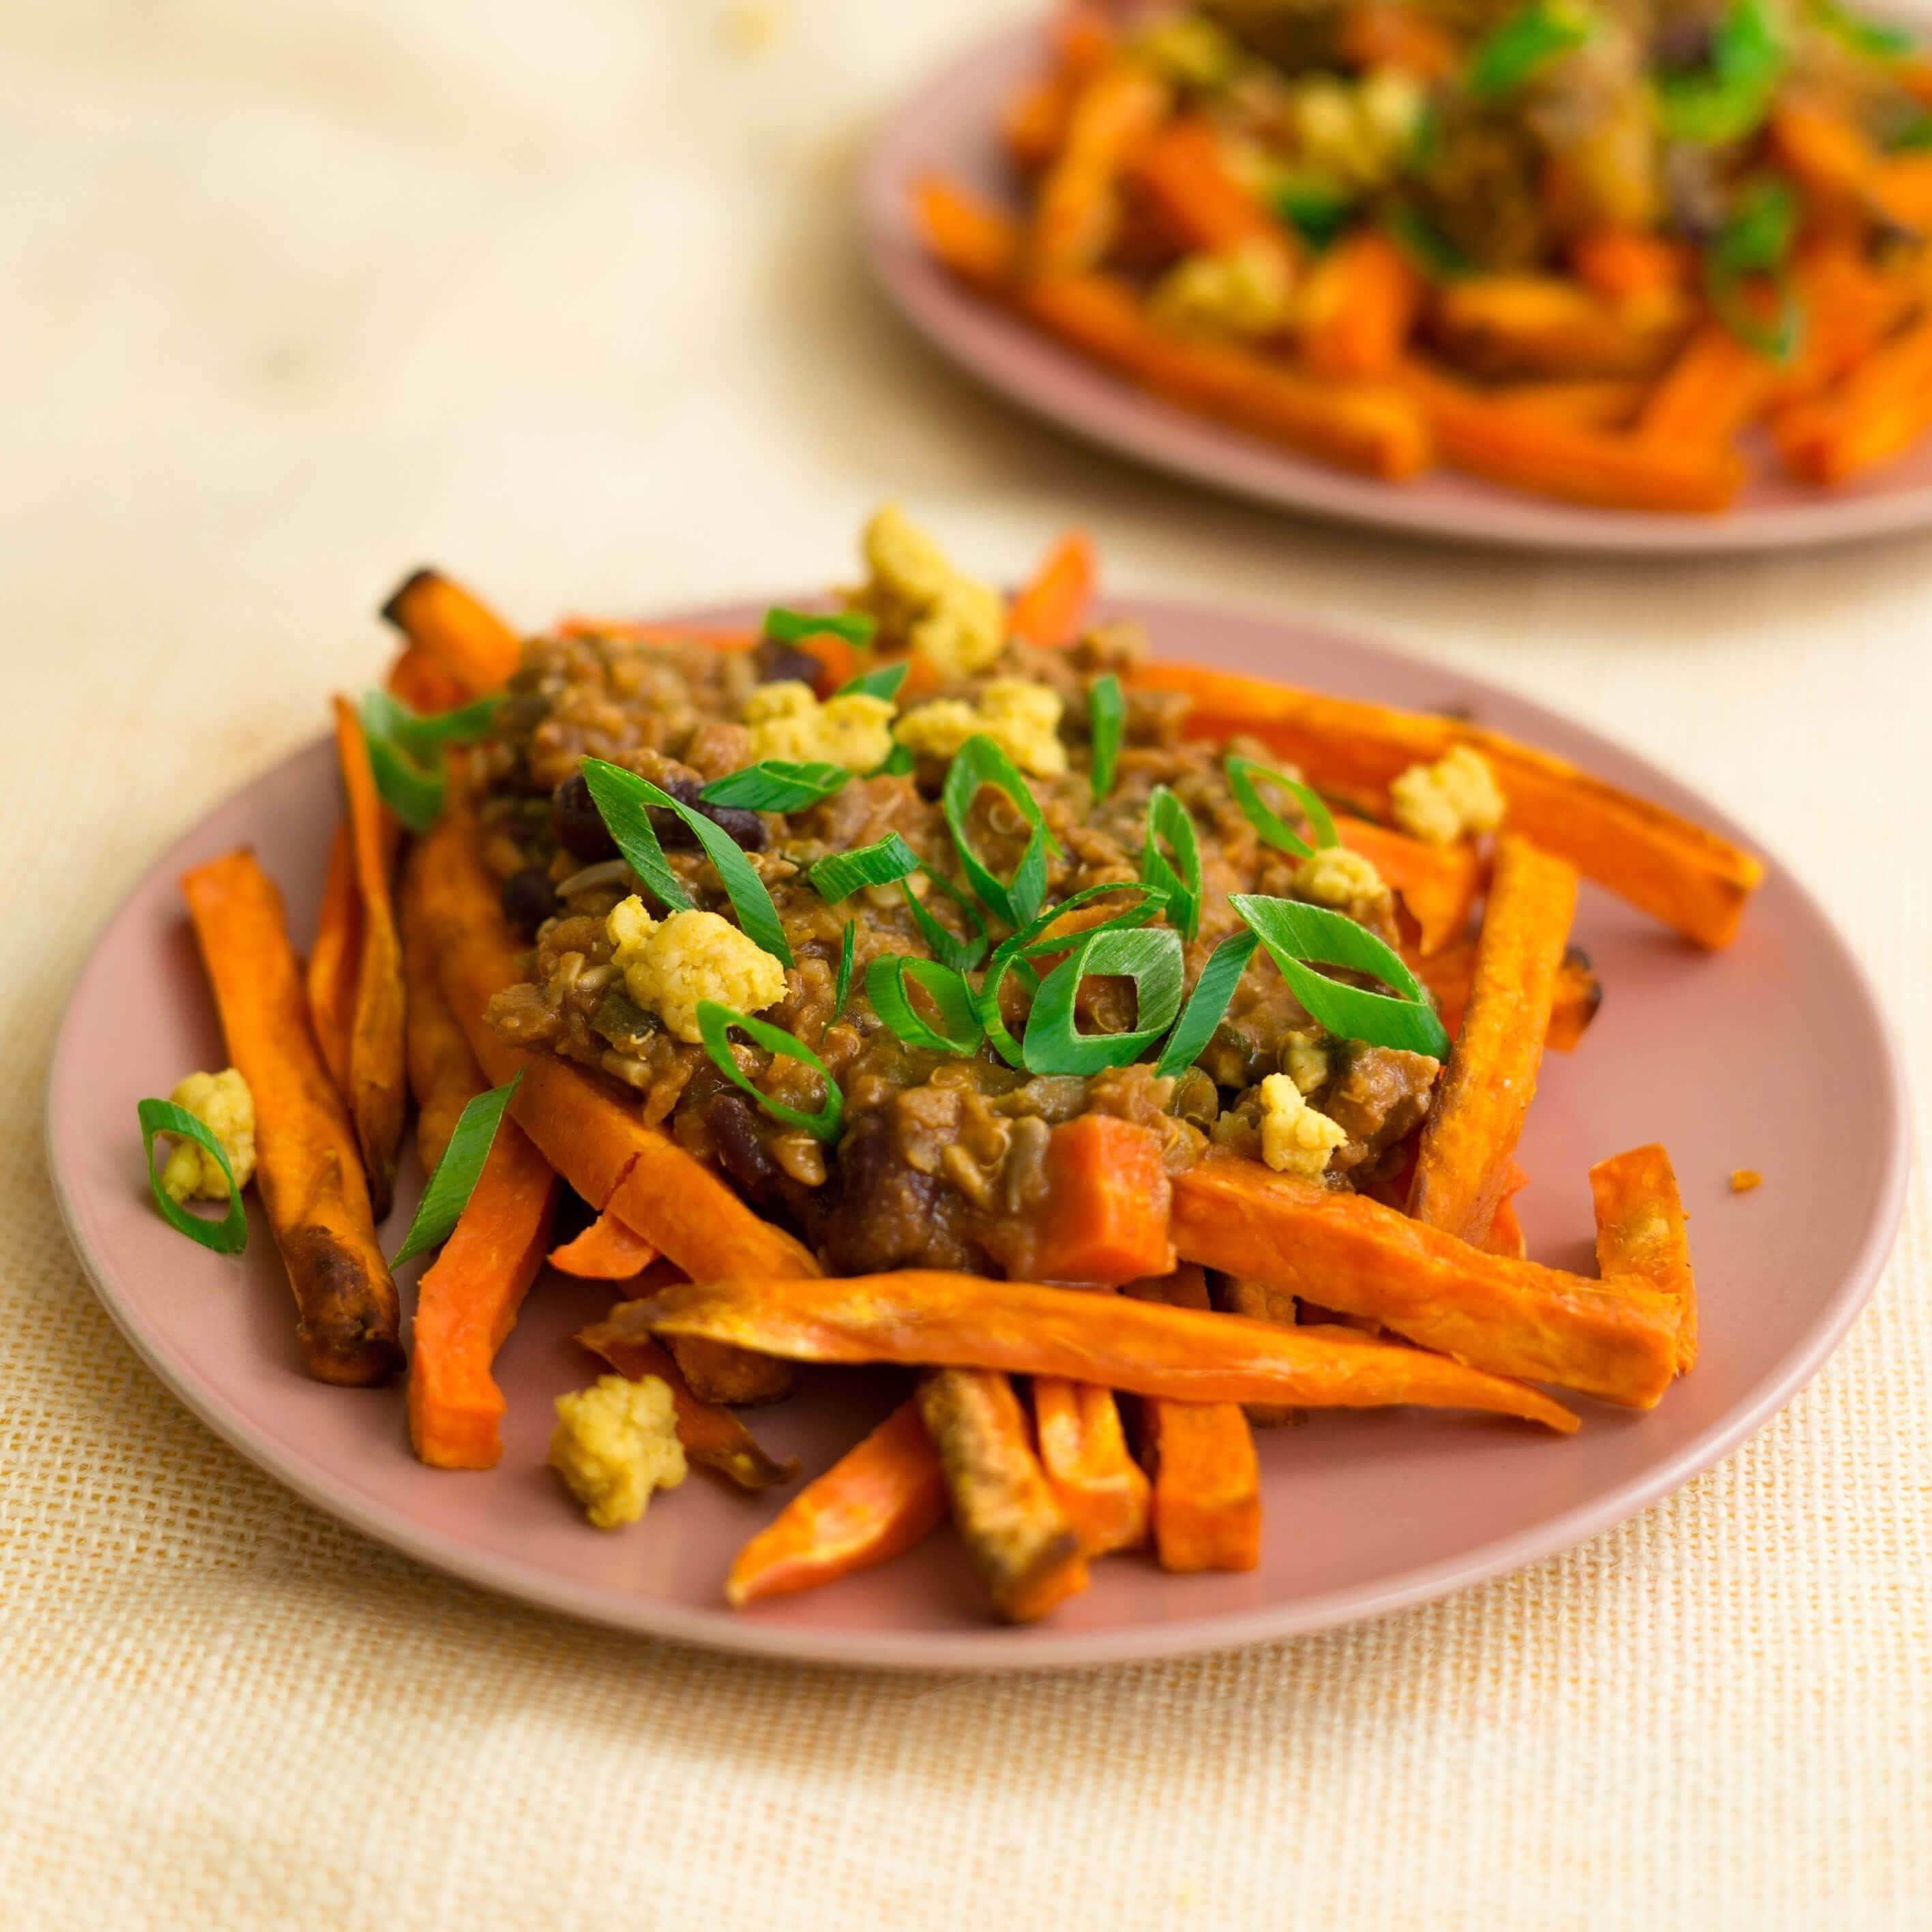 Fresh Meals 2 U Vegetarian Menu Vegetarian Sweet Potato Loaded Fries (V)